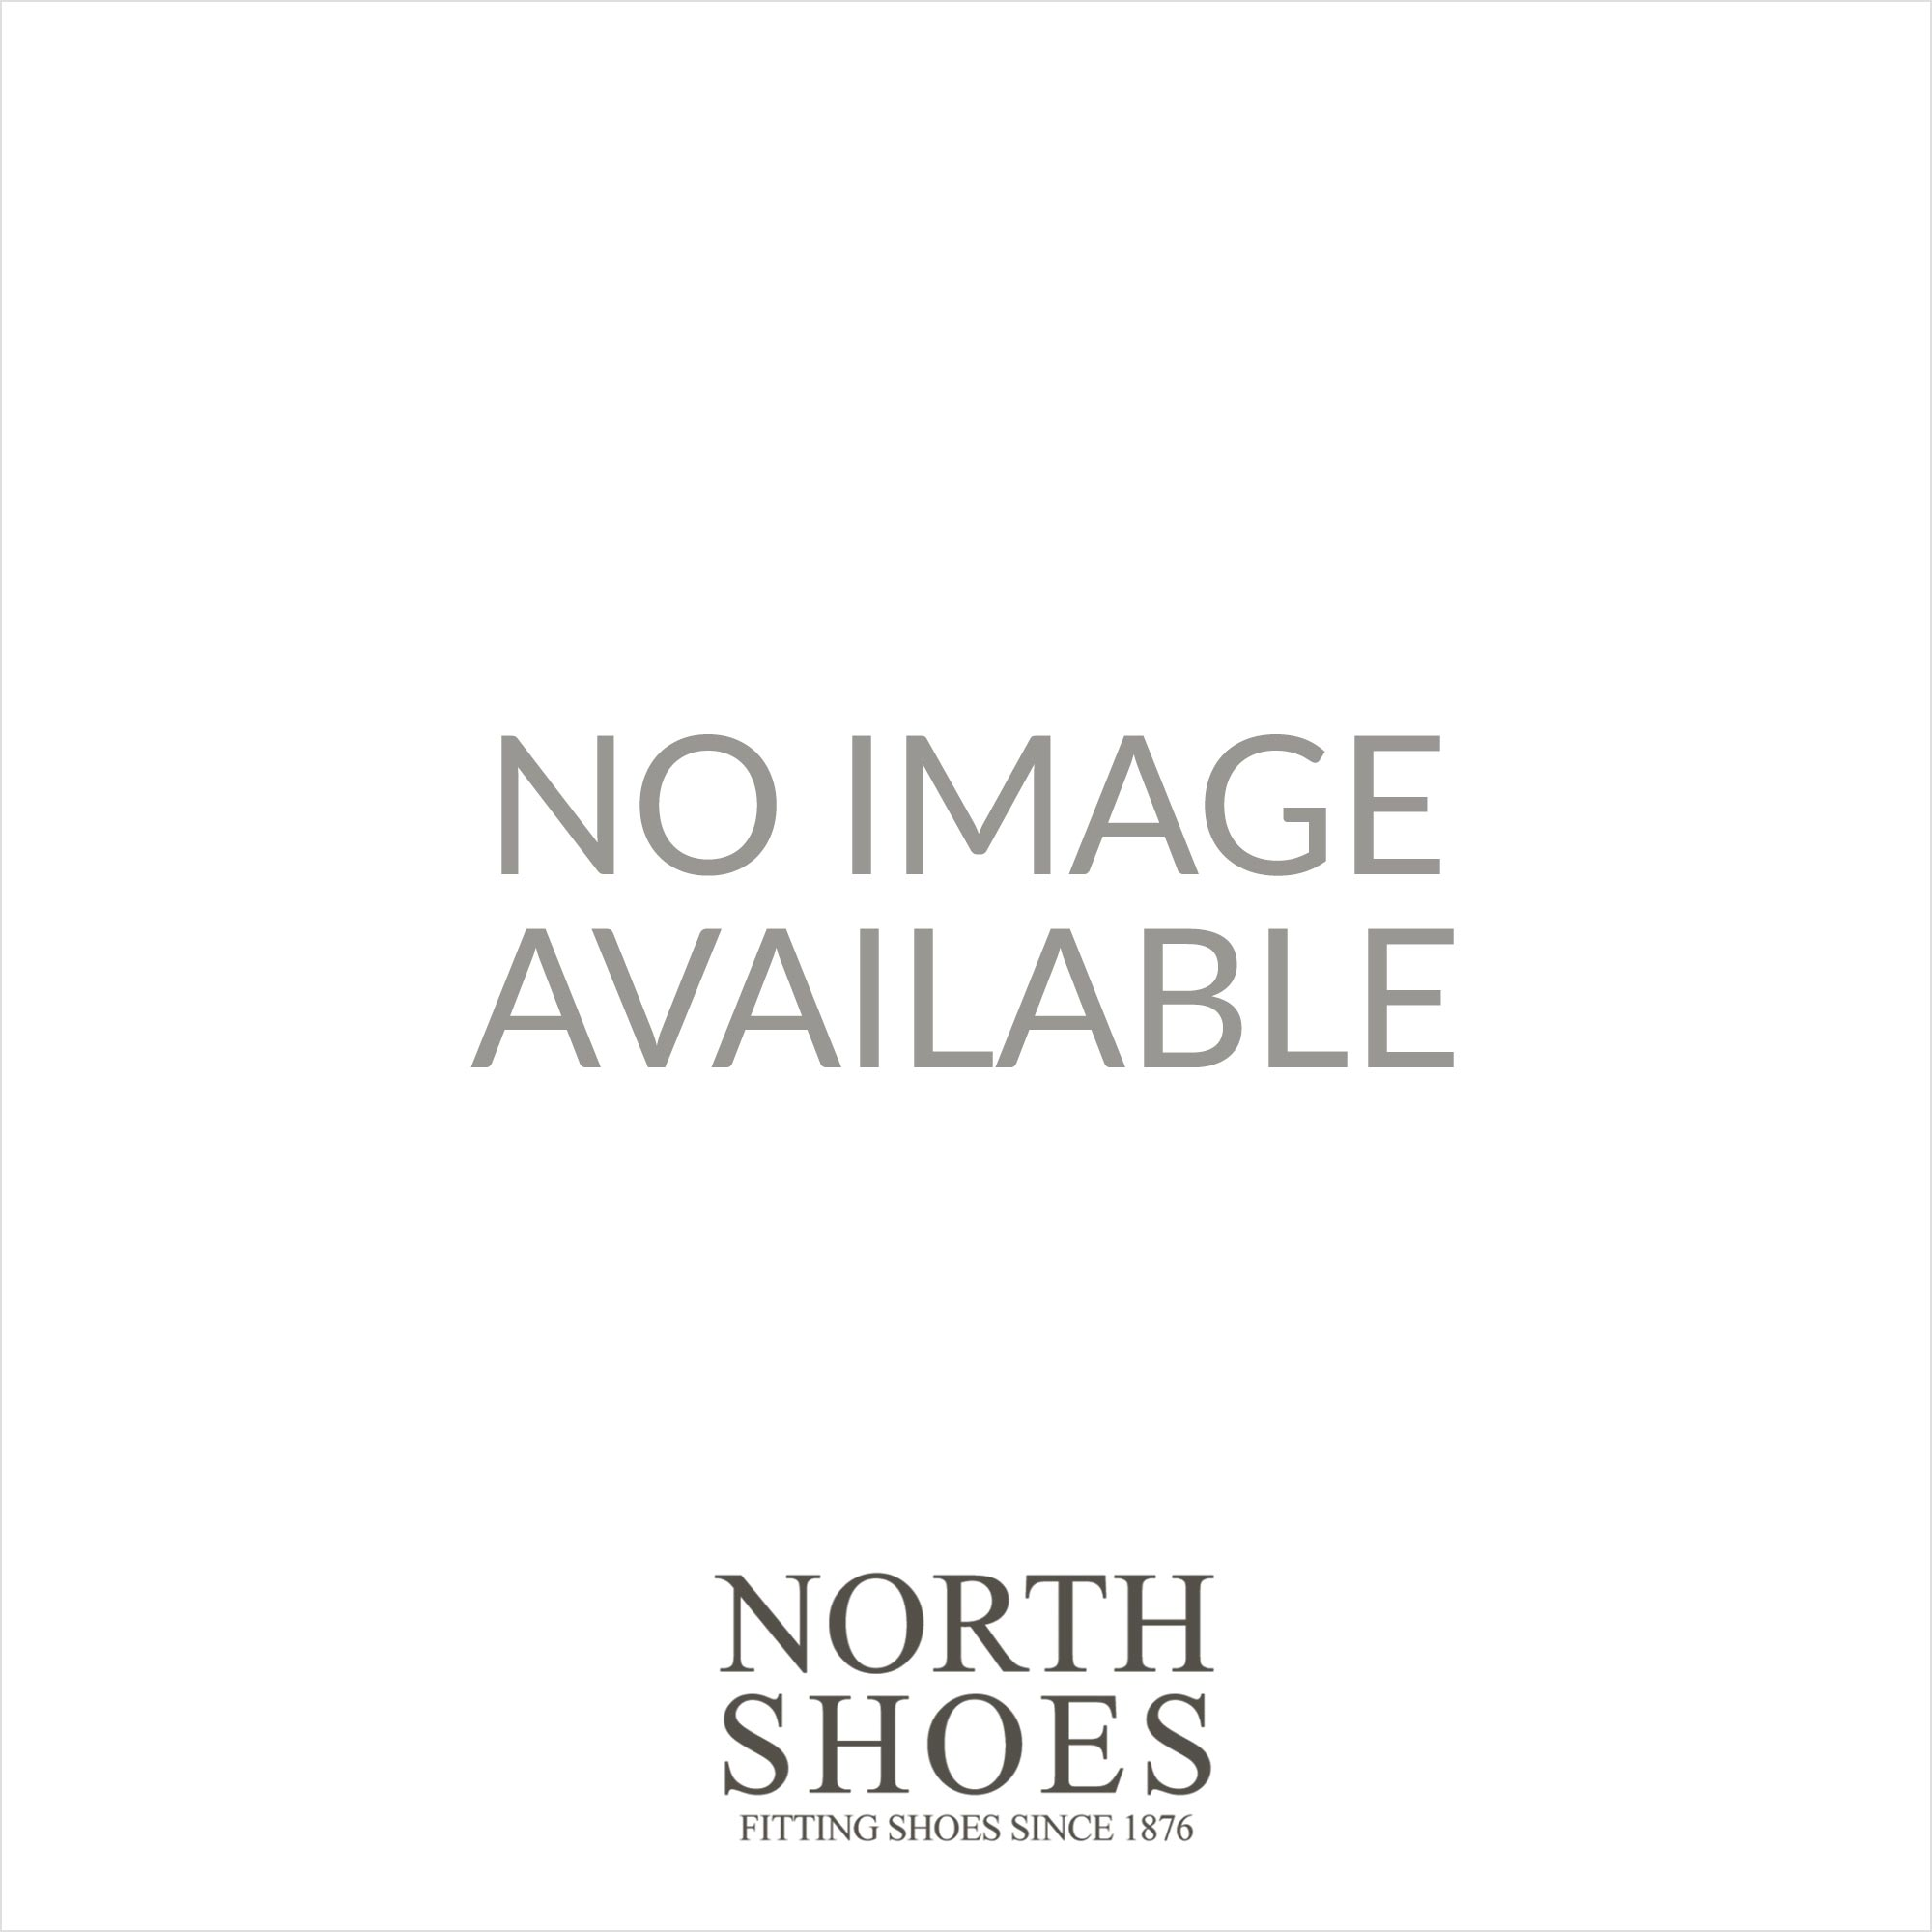 Heliett 342011 191 206 Blue Nubuck Leather Womens Adjustable Slingback Sandals